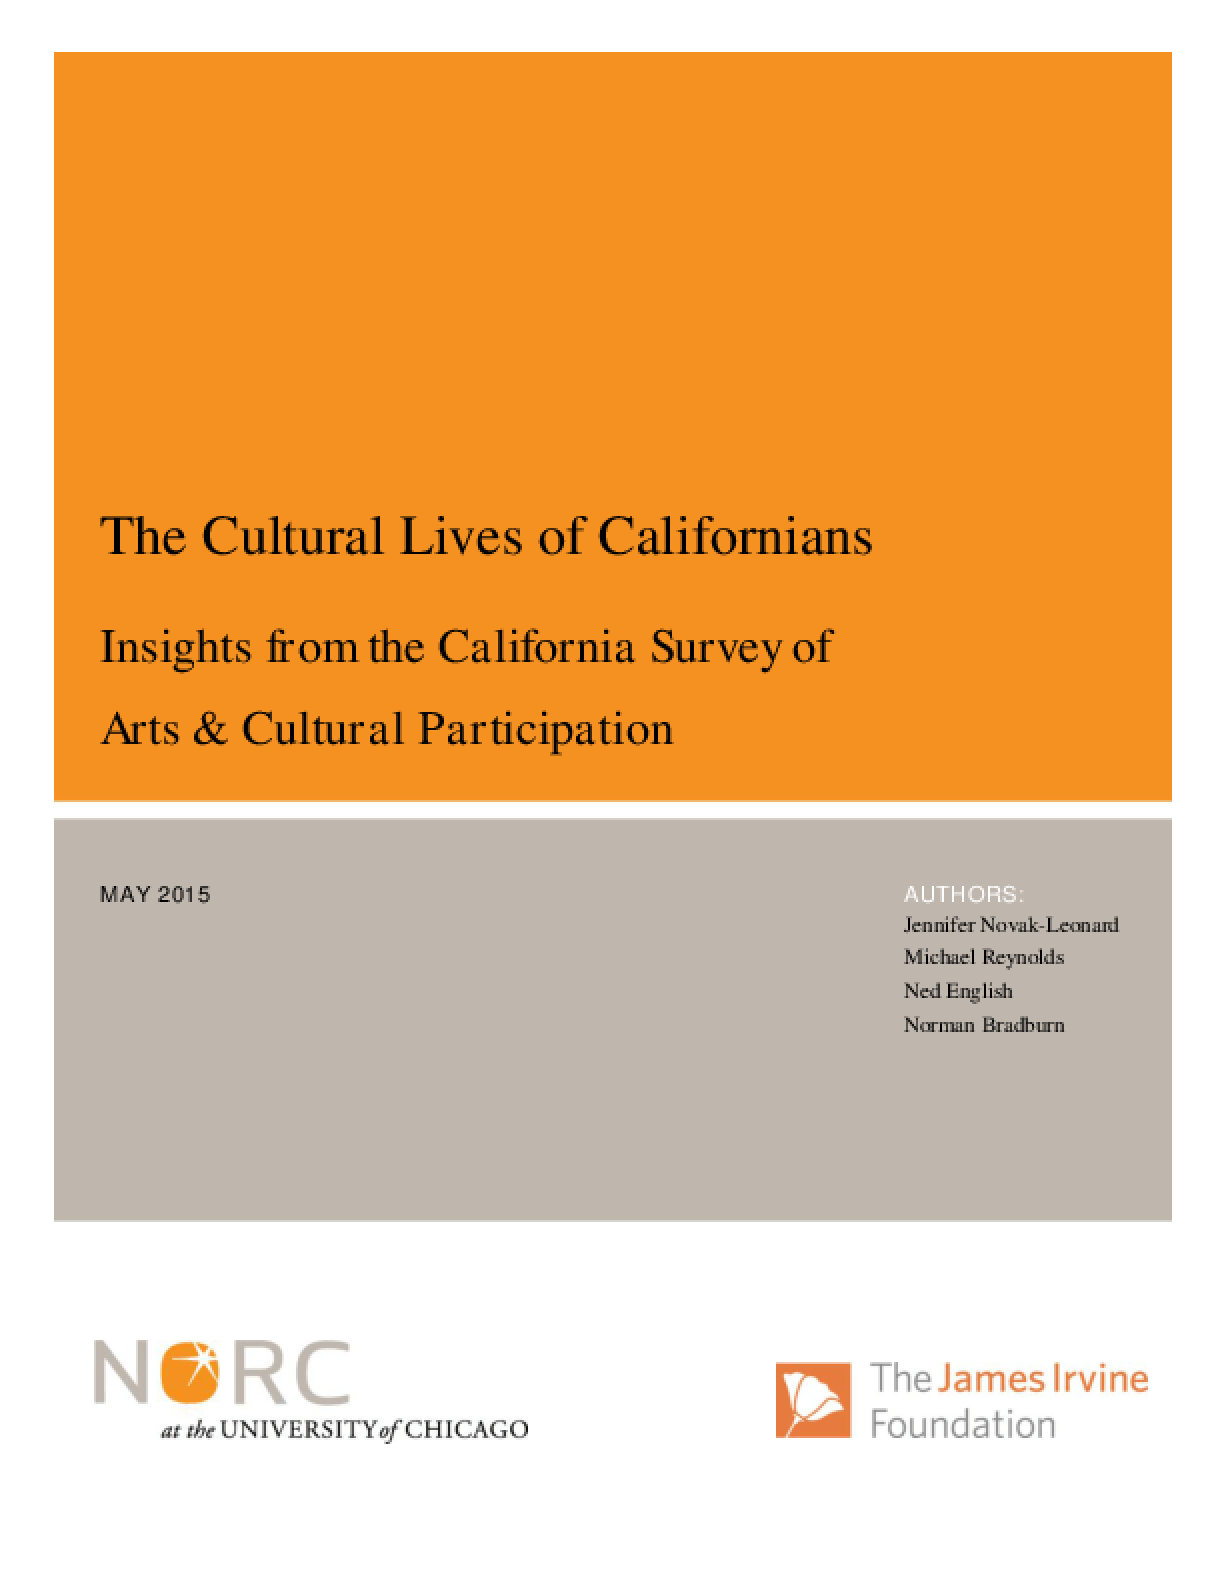 The Cultural Lives of Californians: Insights from the California Survey of Arts and Cultural Participation